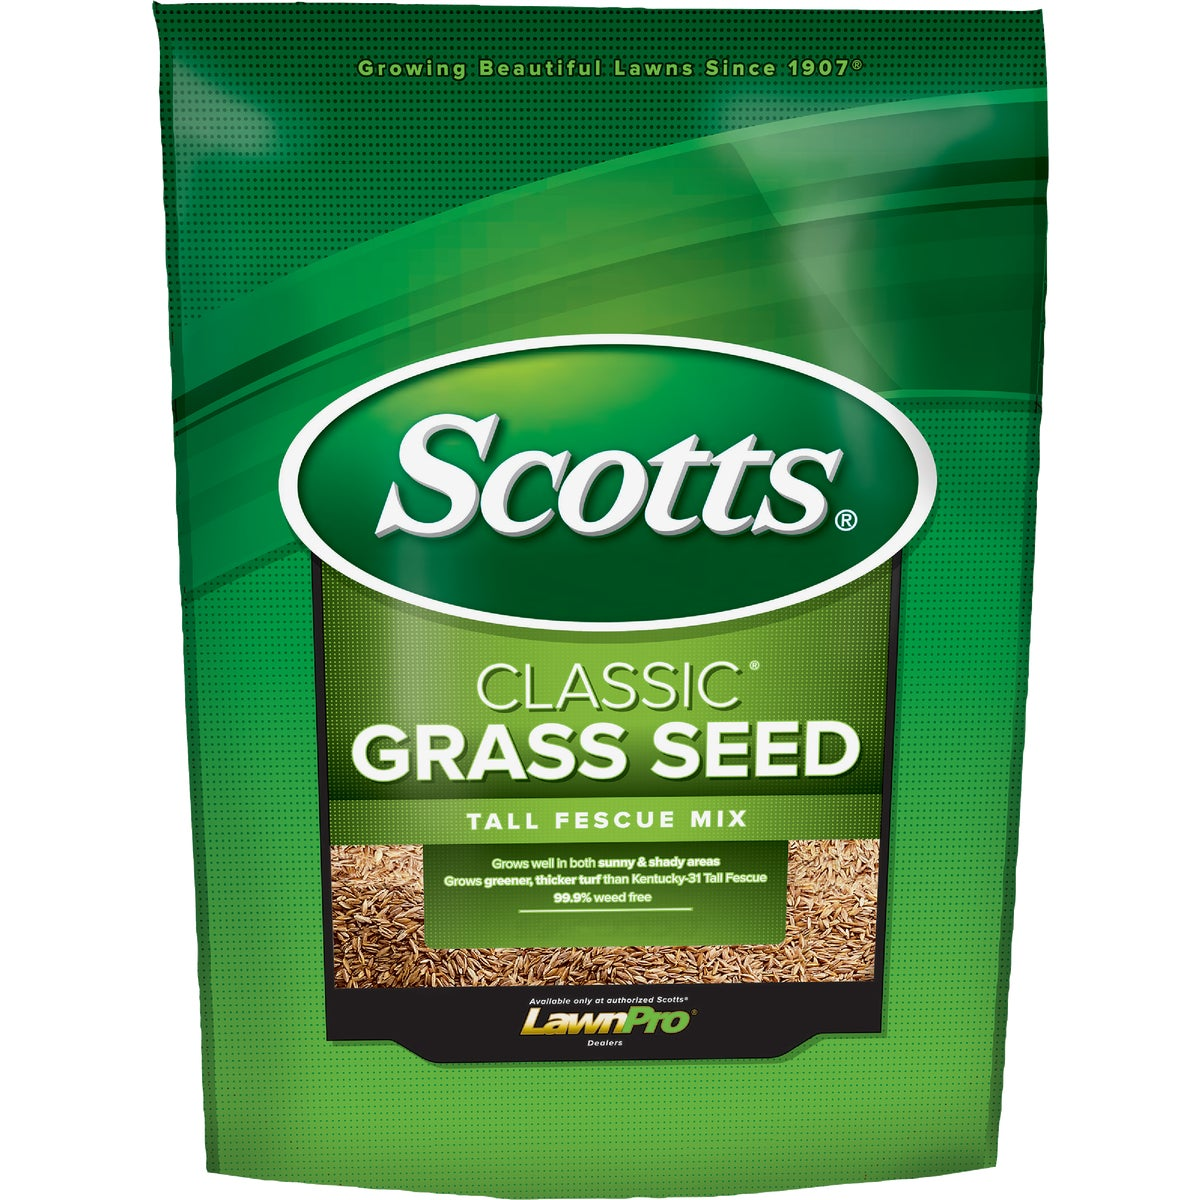 7LB CLSC TALL FESCUE MIX - 17325 by Scotts Company